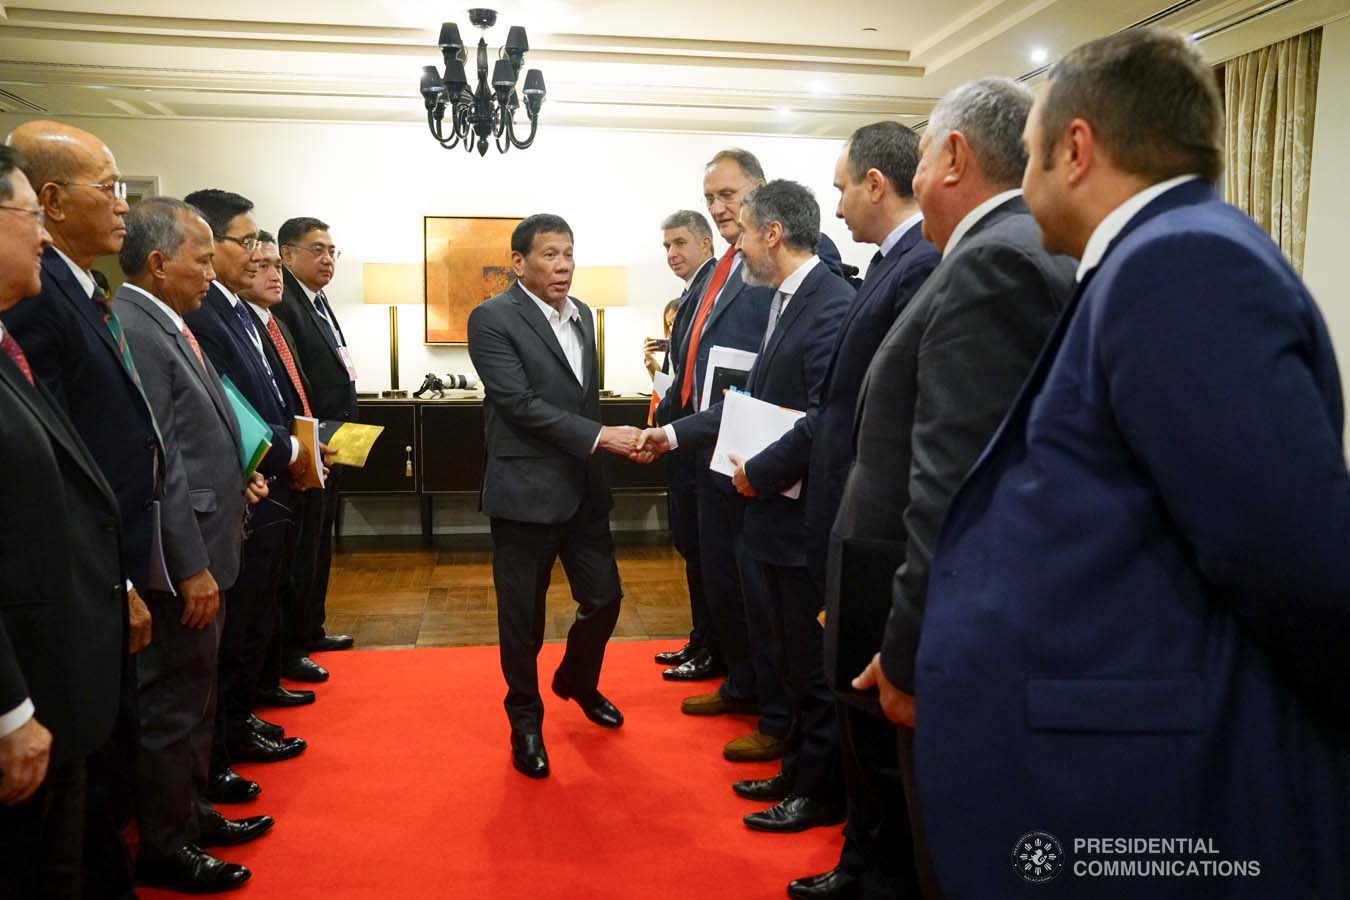 President Rodrigo Roa Duterte greets the officials of Rosneft Oil Co. led by its CEO Igor Sechin, who paid a courtesy call on the President at the Four Seasons Hotel in Moscow, Russia on October 2, 2019. JOEY DALUMPINES/PRESIDENTIAL PHOTO